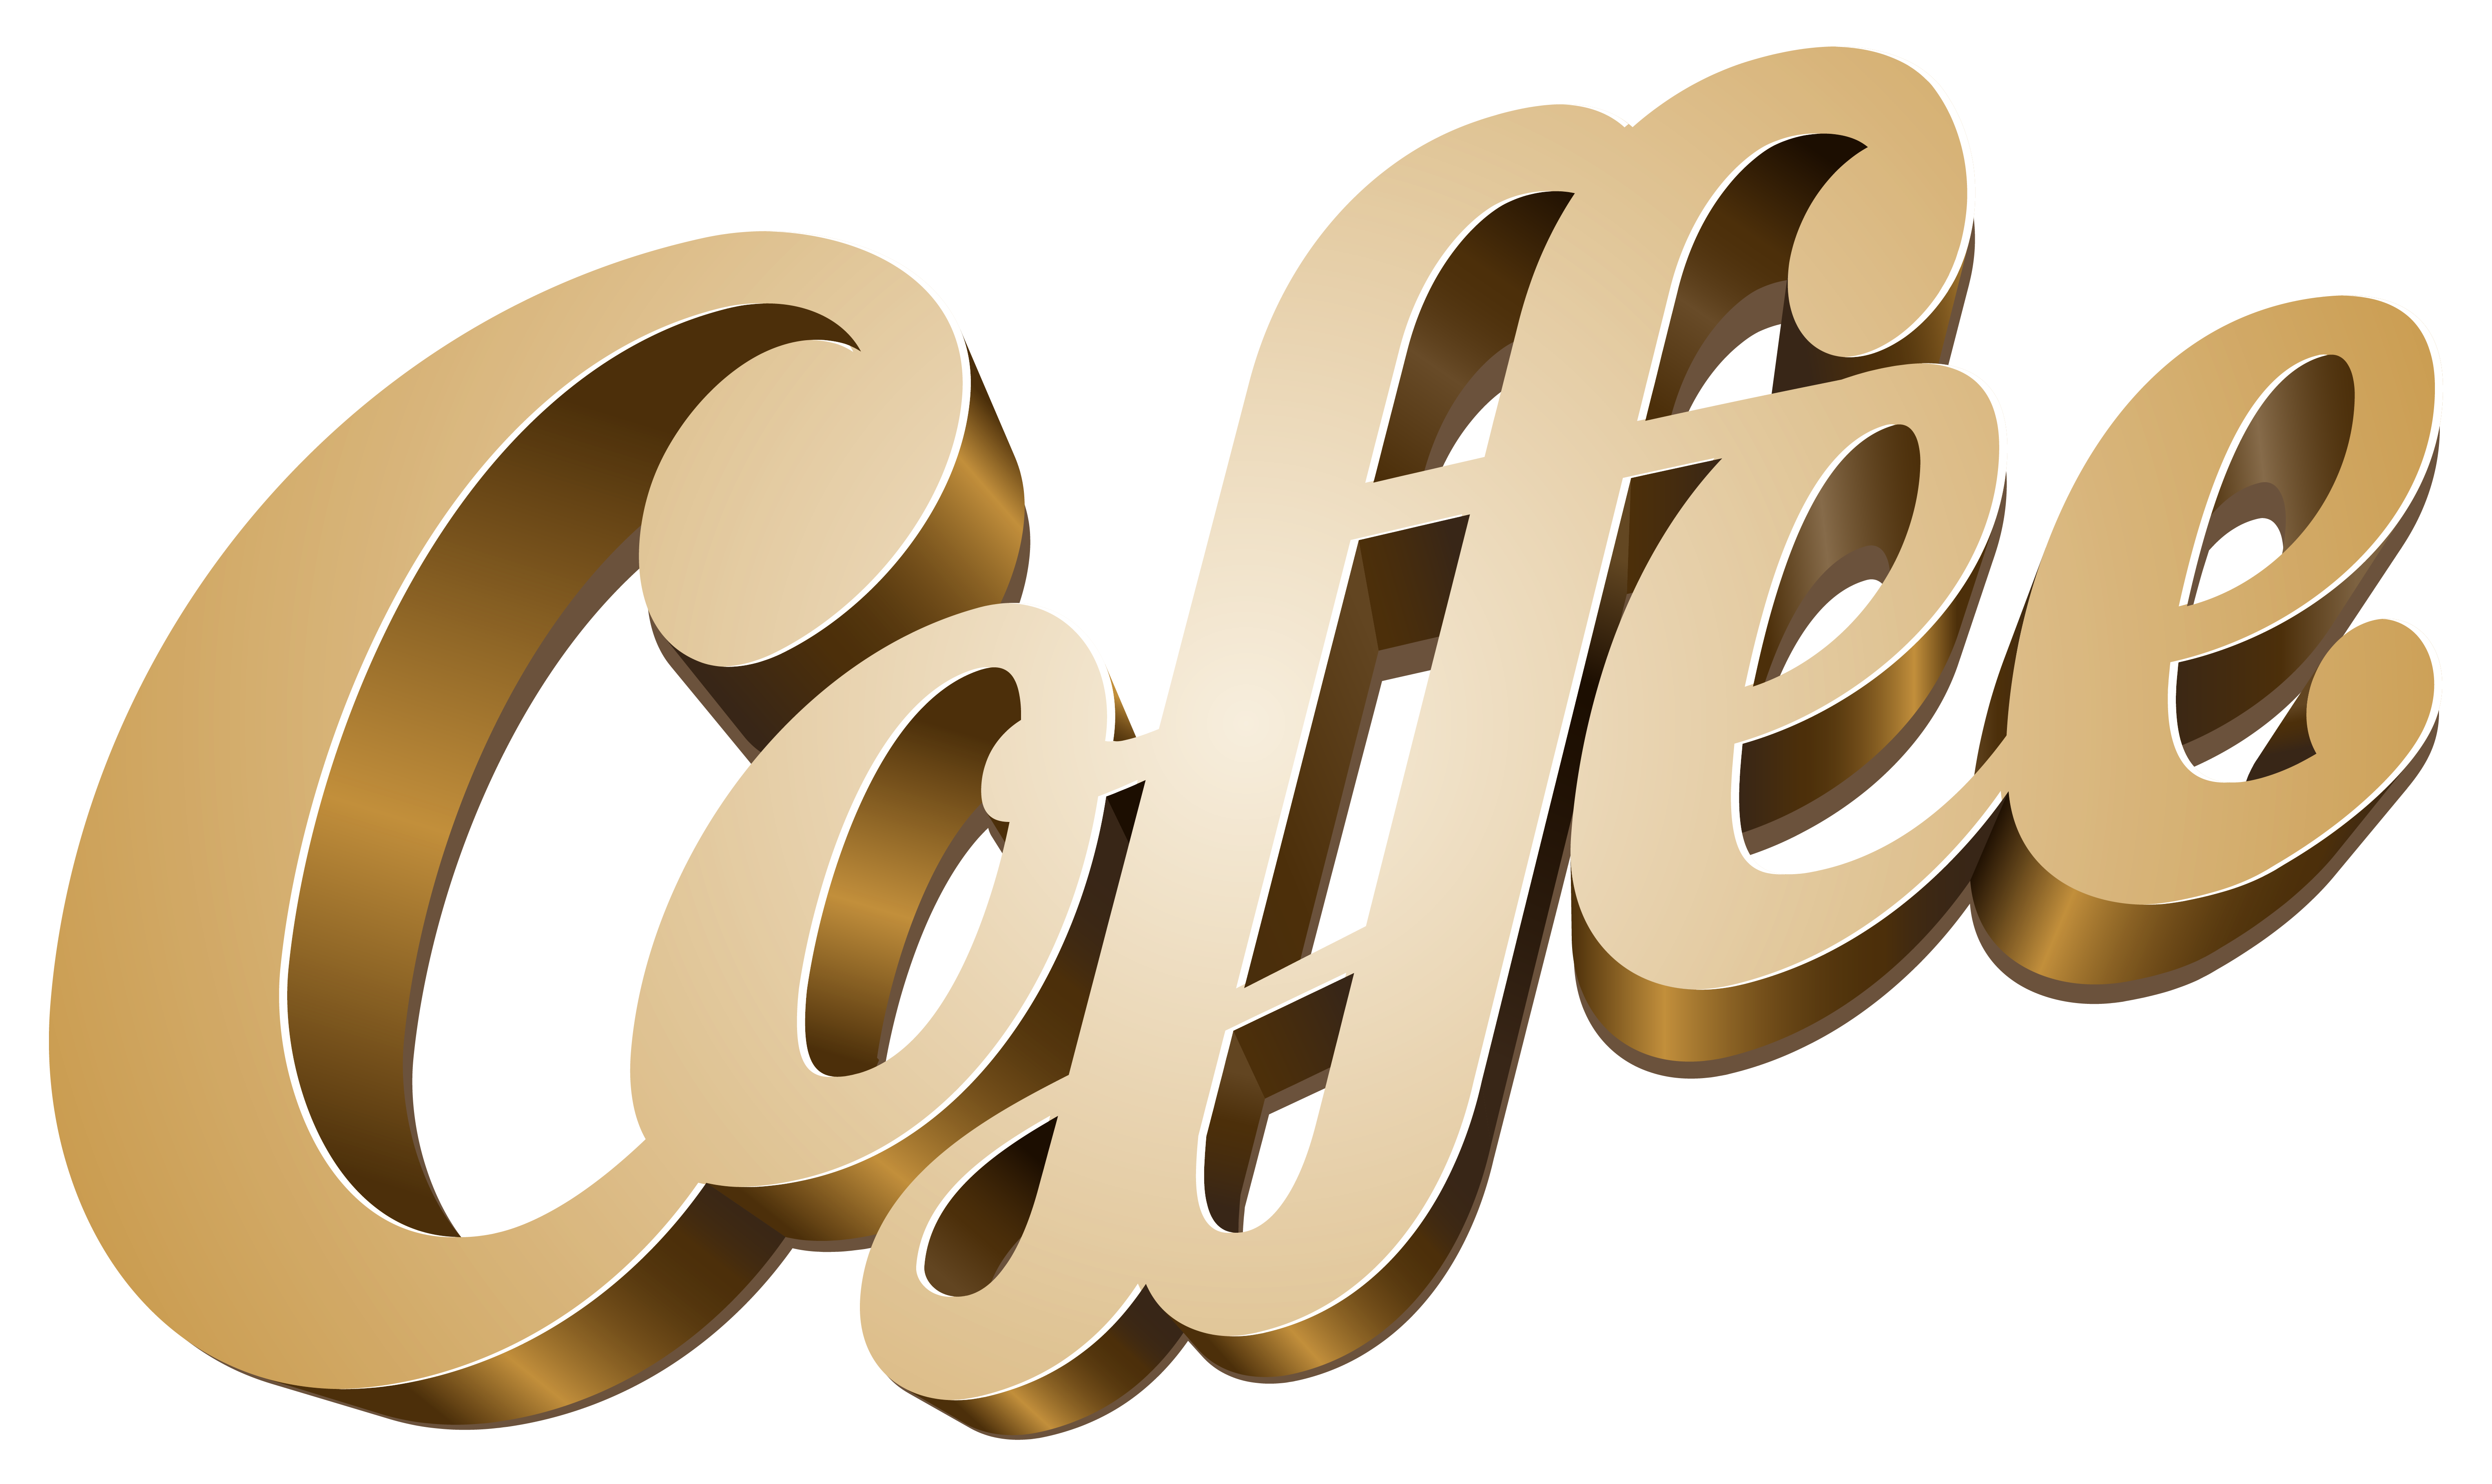 Deco coffee png image. Cup clipart vector